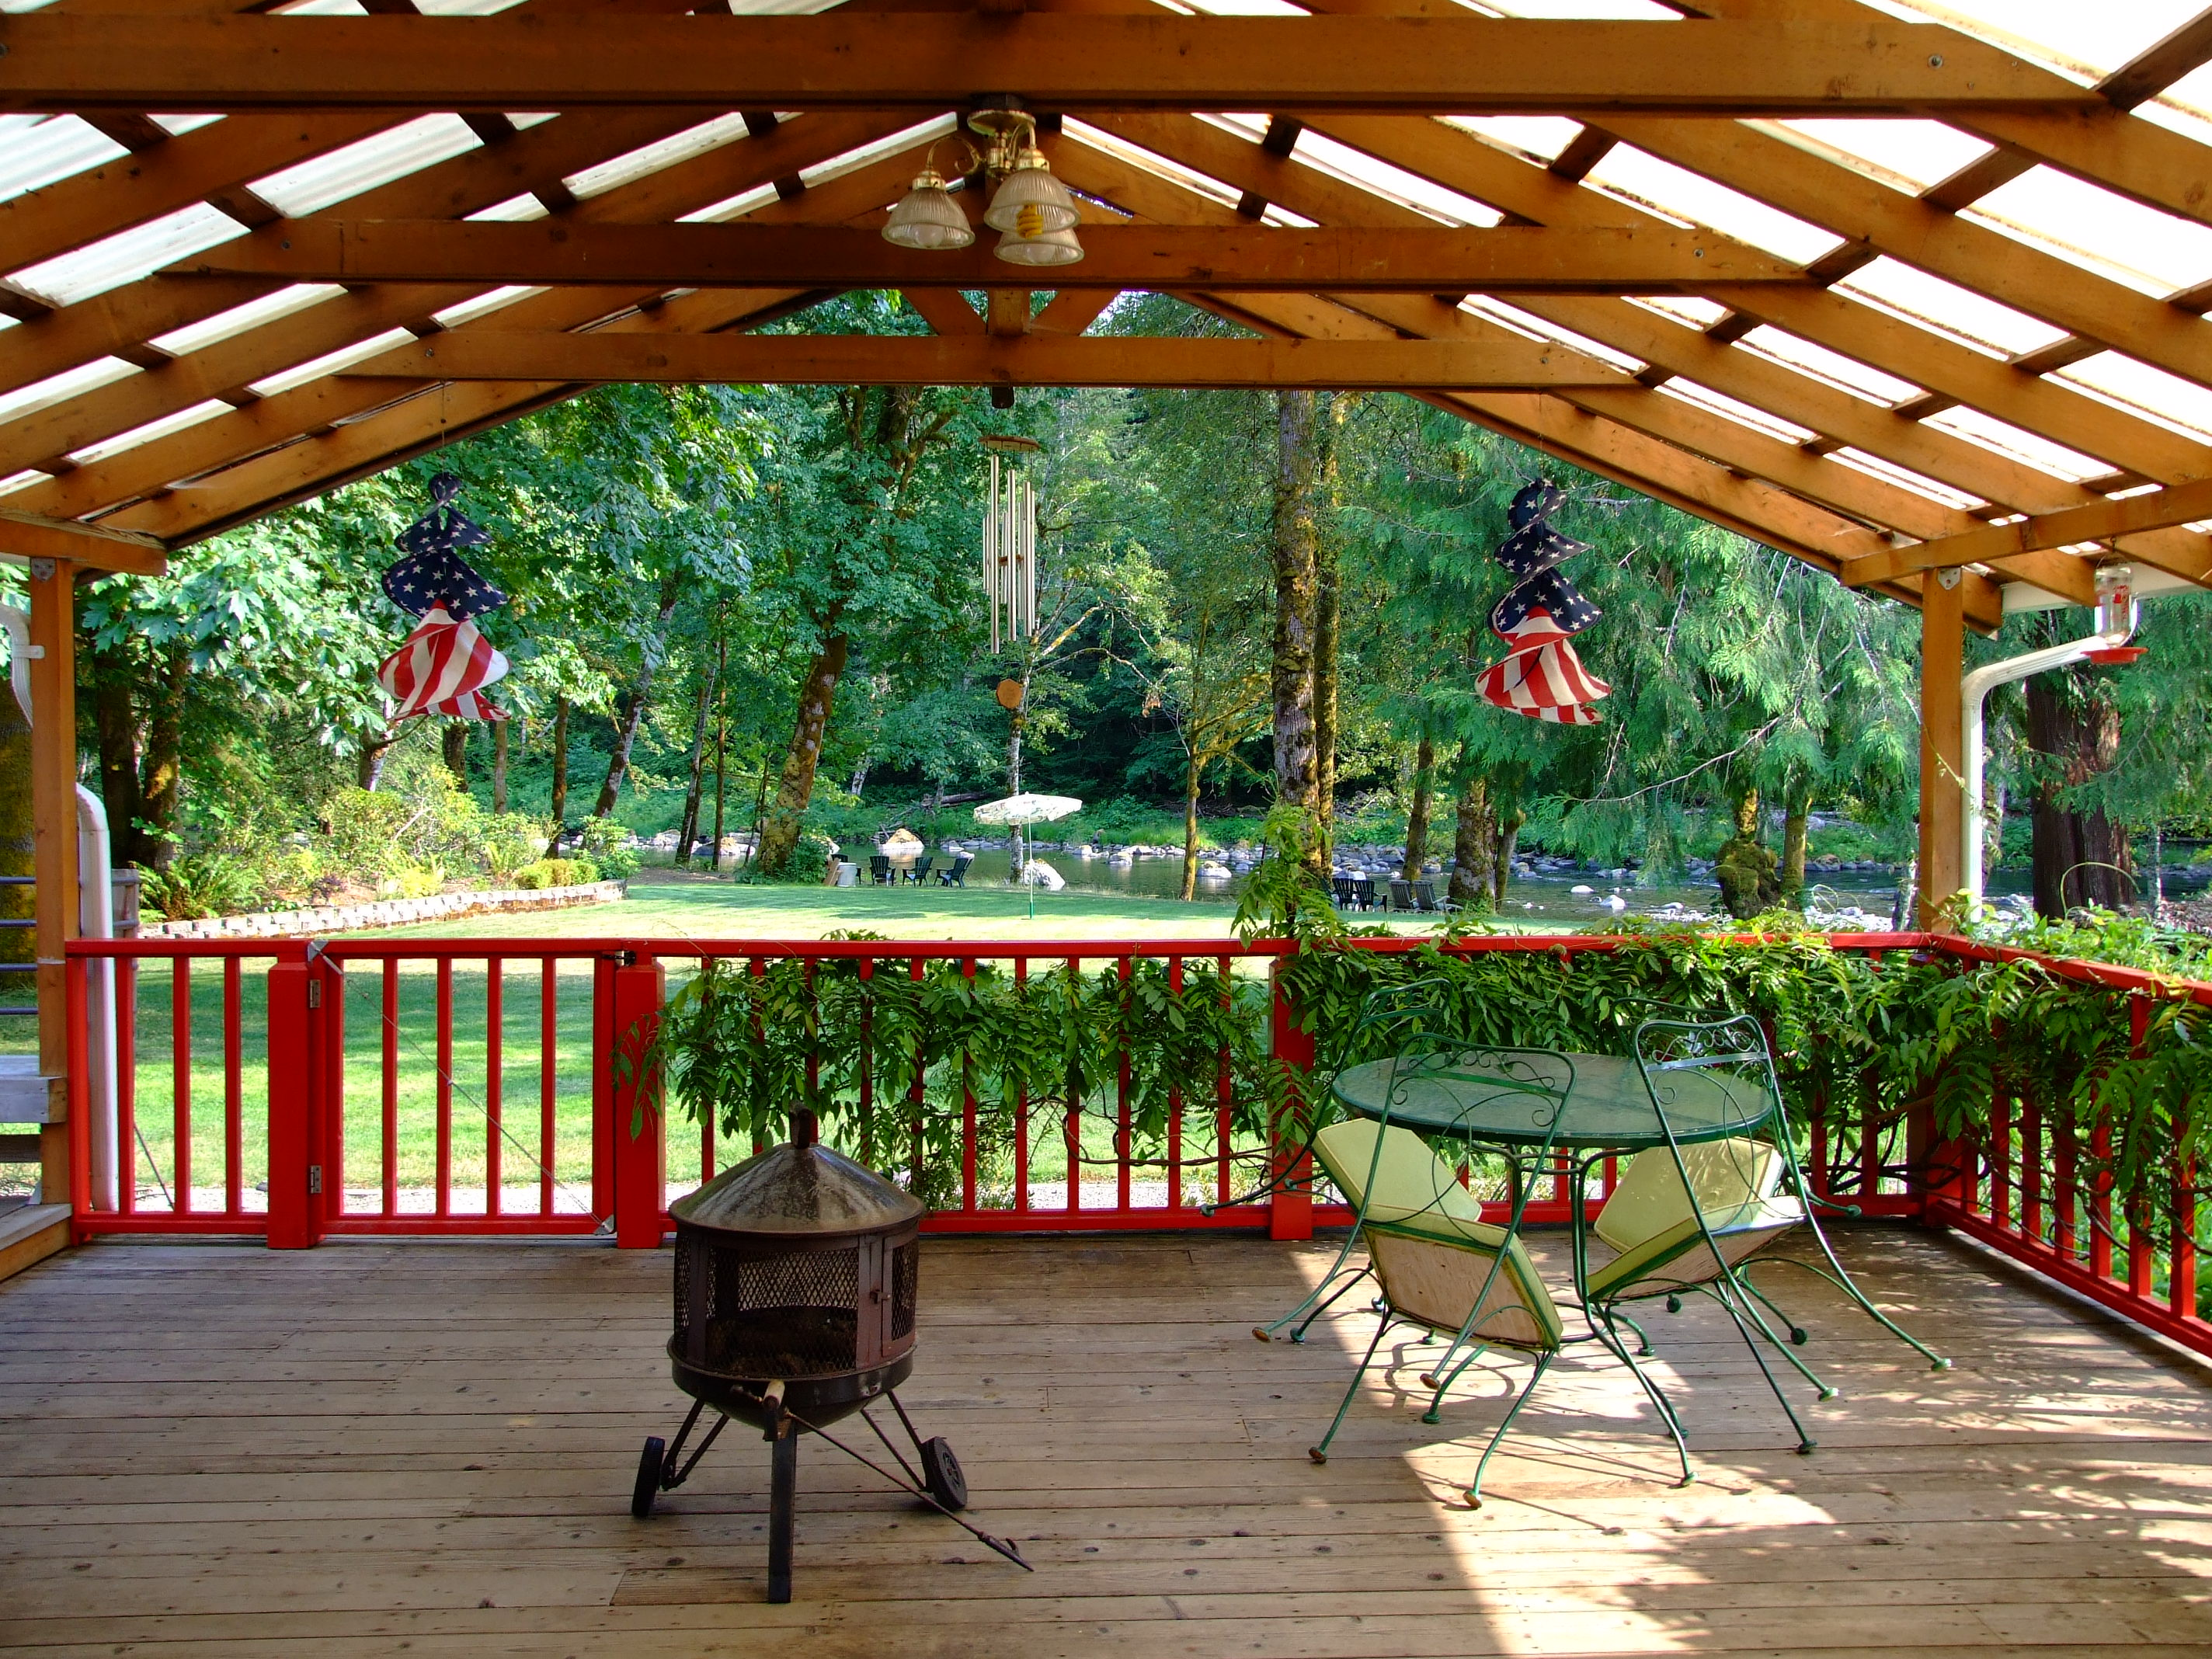 The view down to the river across the Cedar Breeze cabin deck. The hot tub is to the left. I'll have to use a wide angle lens next time.